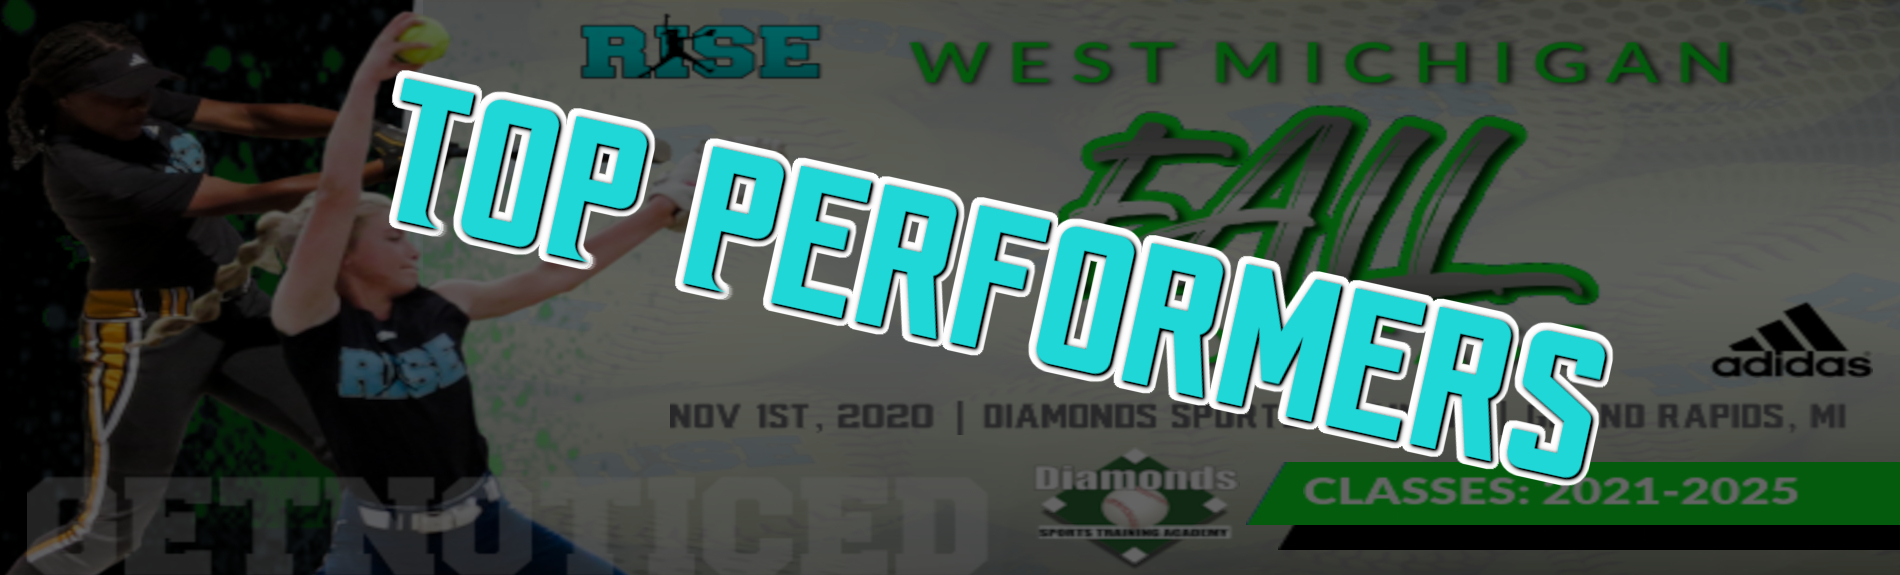 "West Michigan Fall Showcase ""TOP PERFORMERS"""